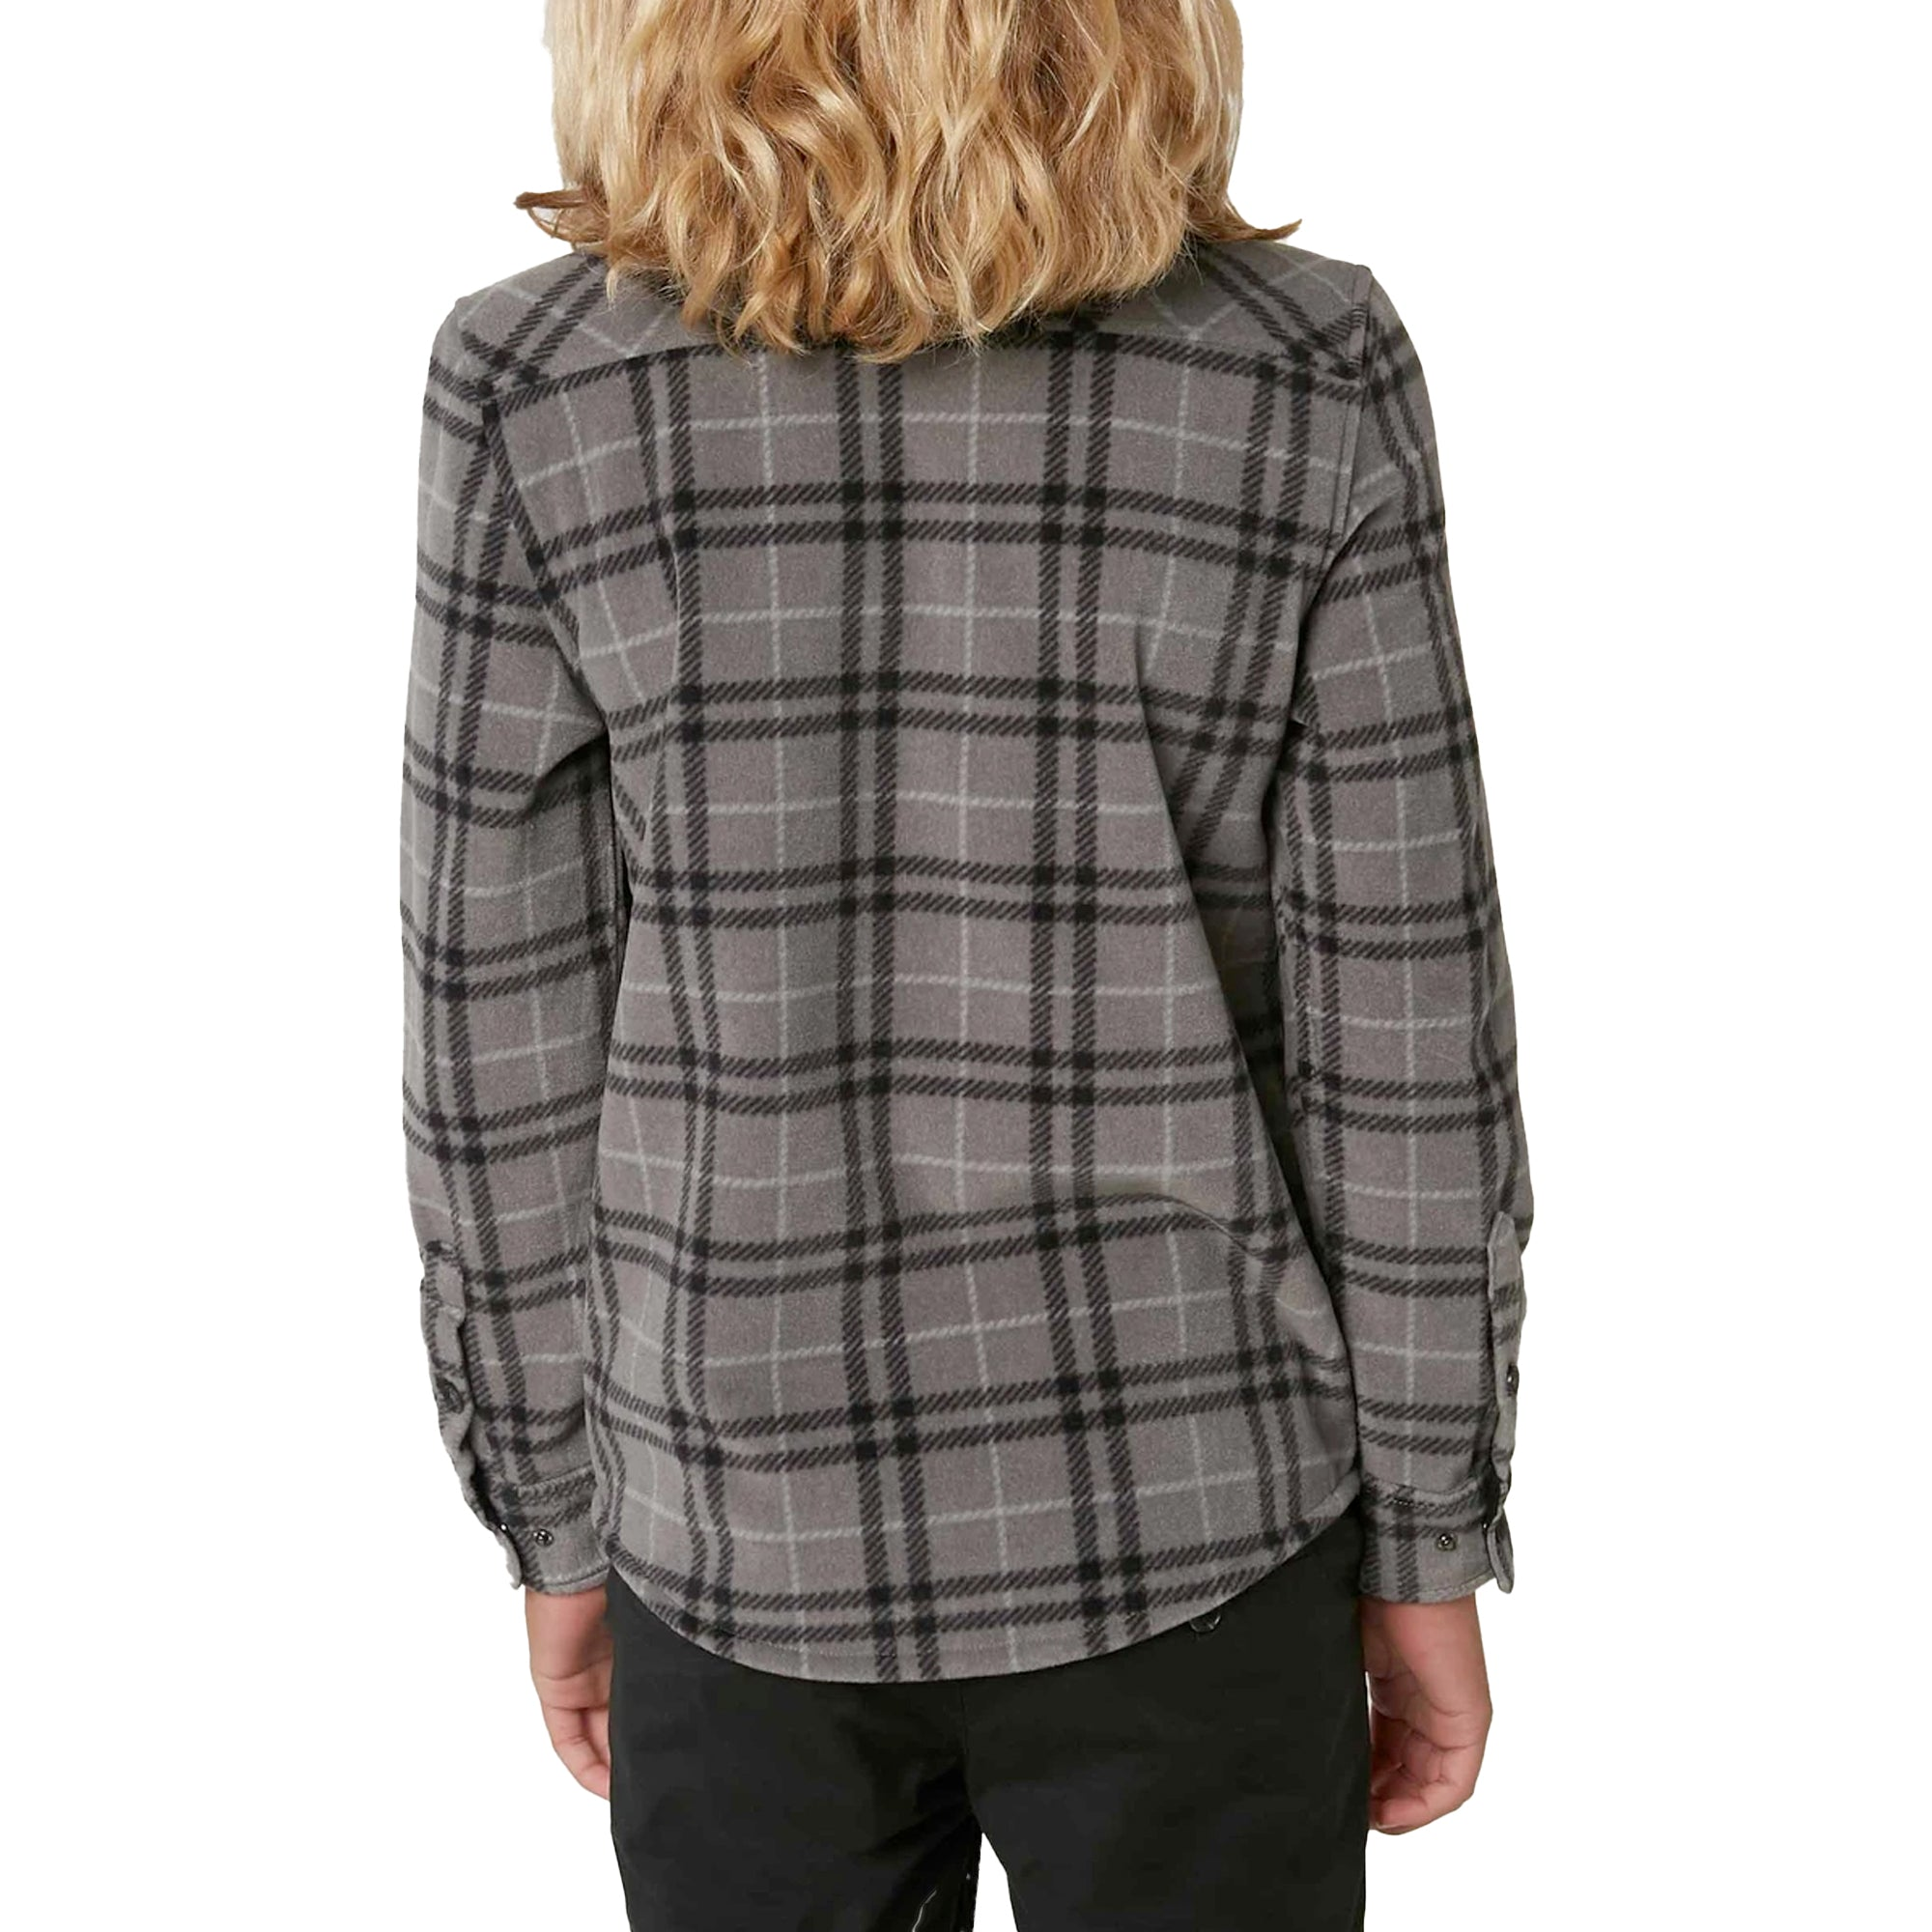 O'Neill Glacier Plaid Youth Boy's Flannel